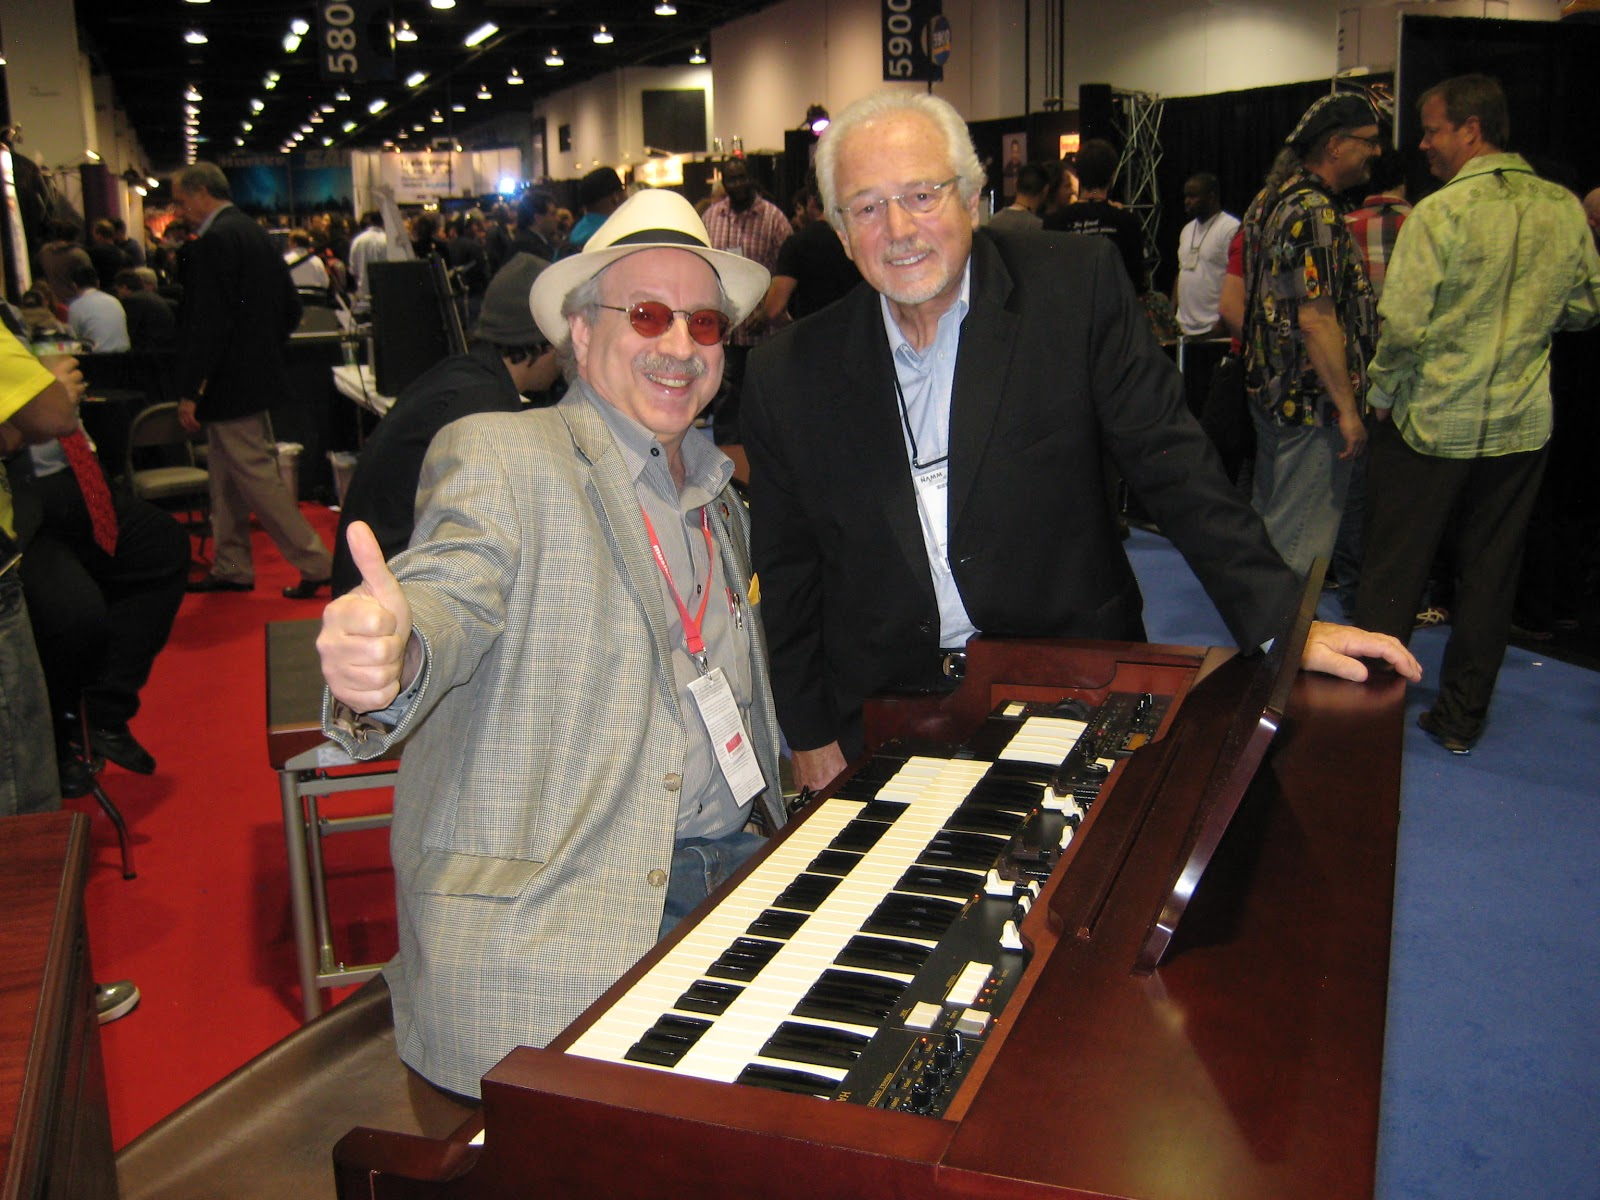 jon hammond demonstrating the new mini b hammond organ with